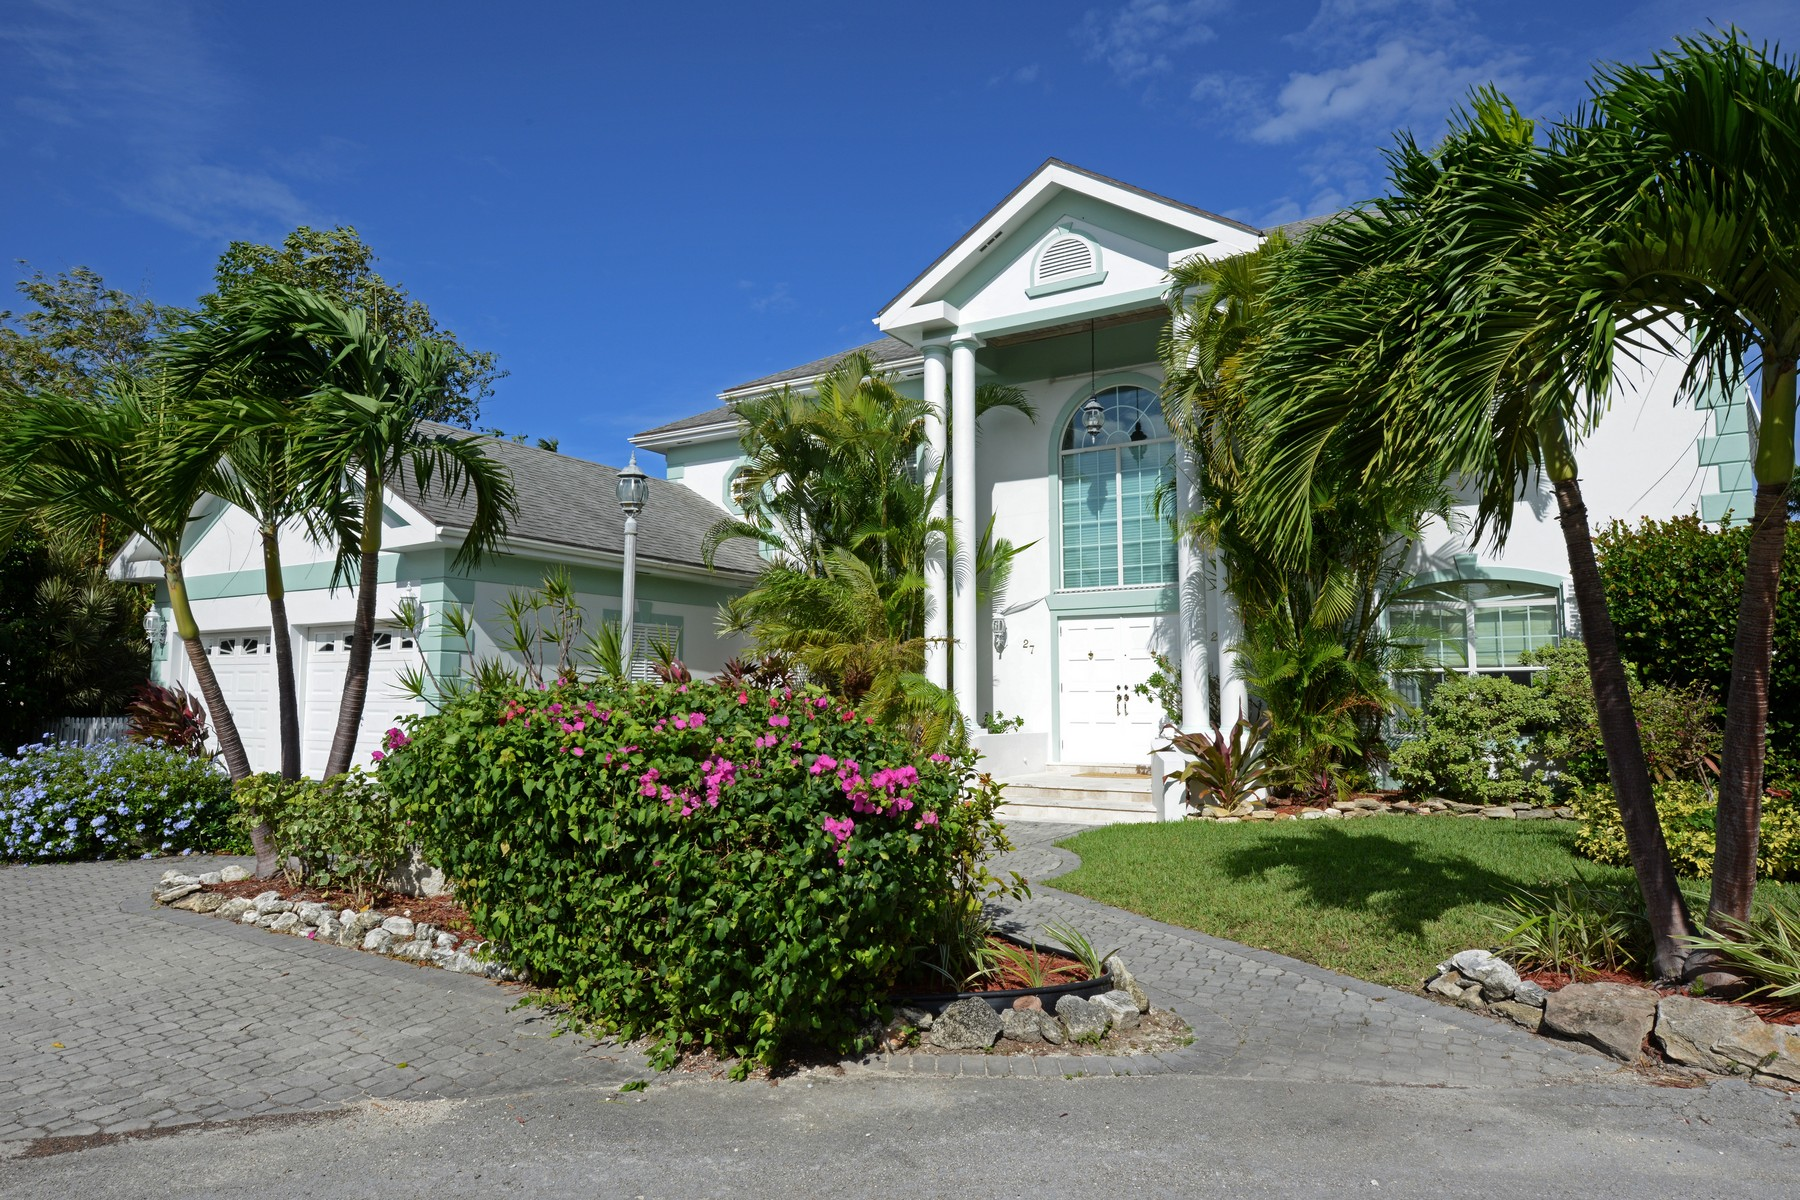 Single Family Home for Rent at 27 Sand Dollar Island Sandyport, Cable Beach, Nassau And Paradise Island Bahamas